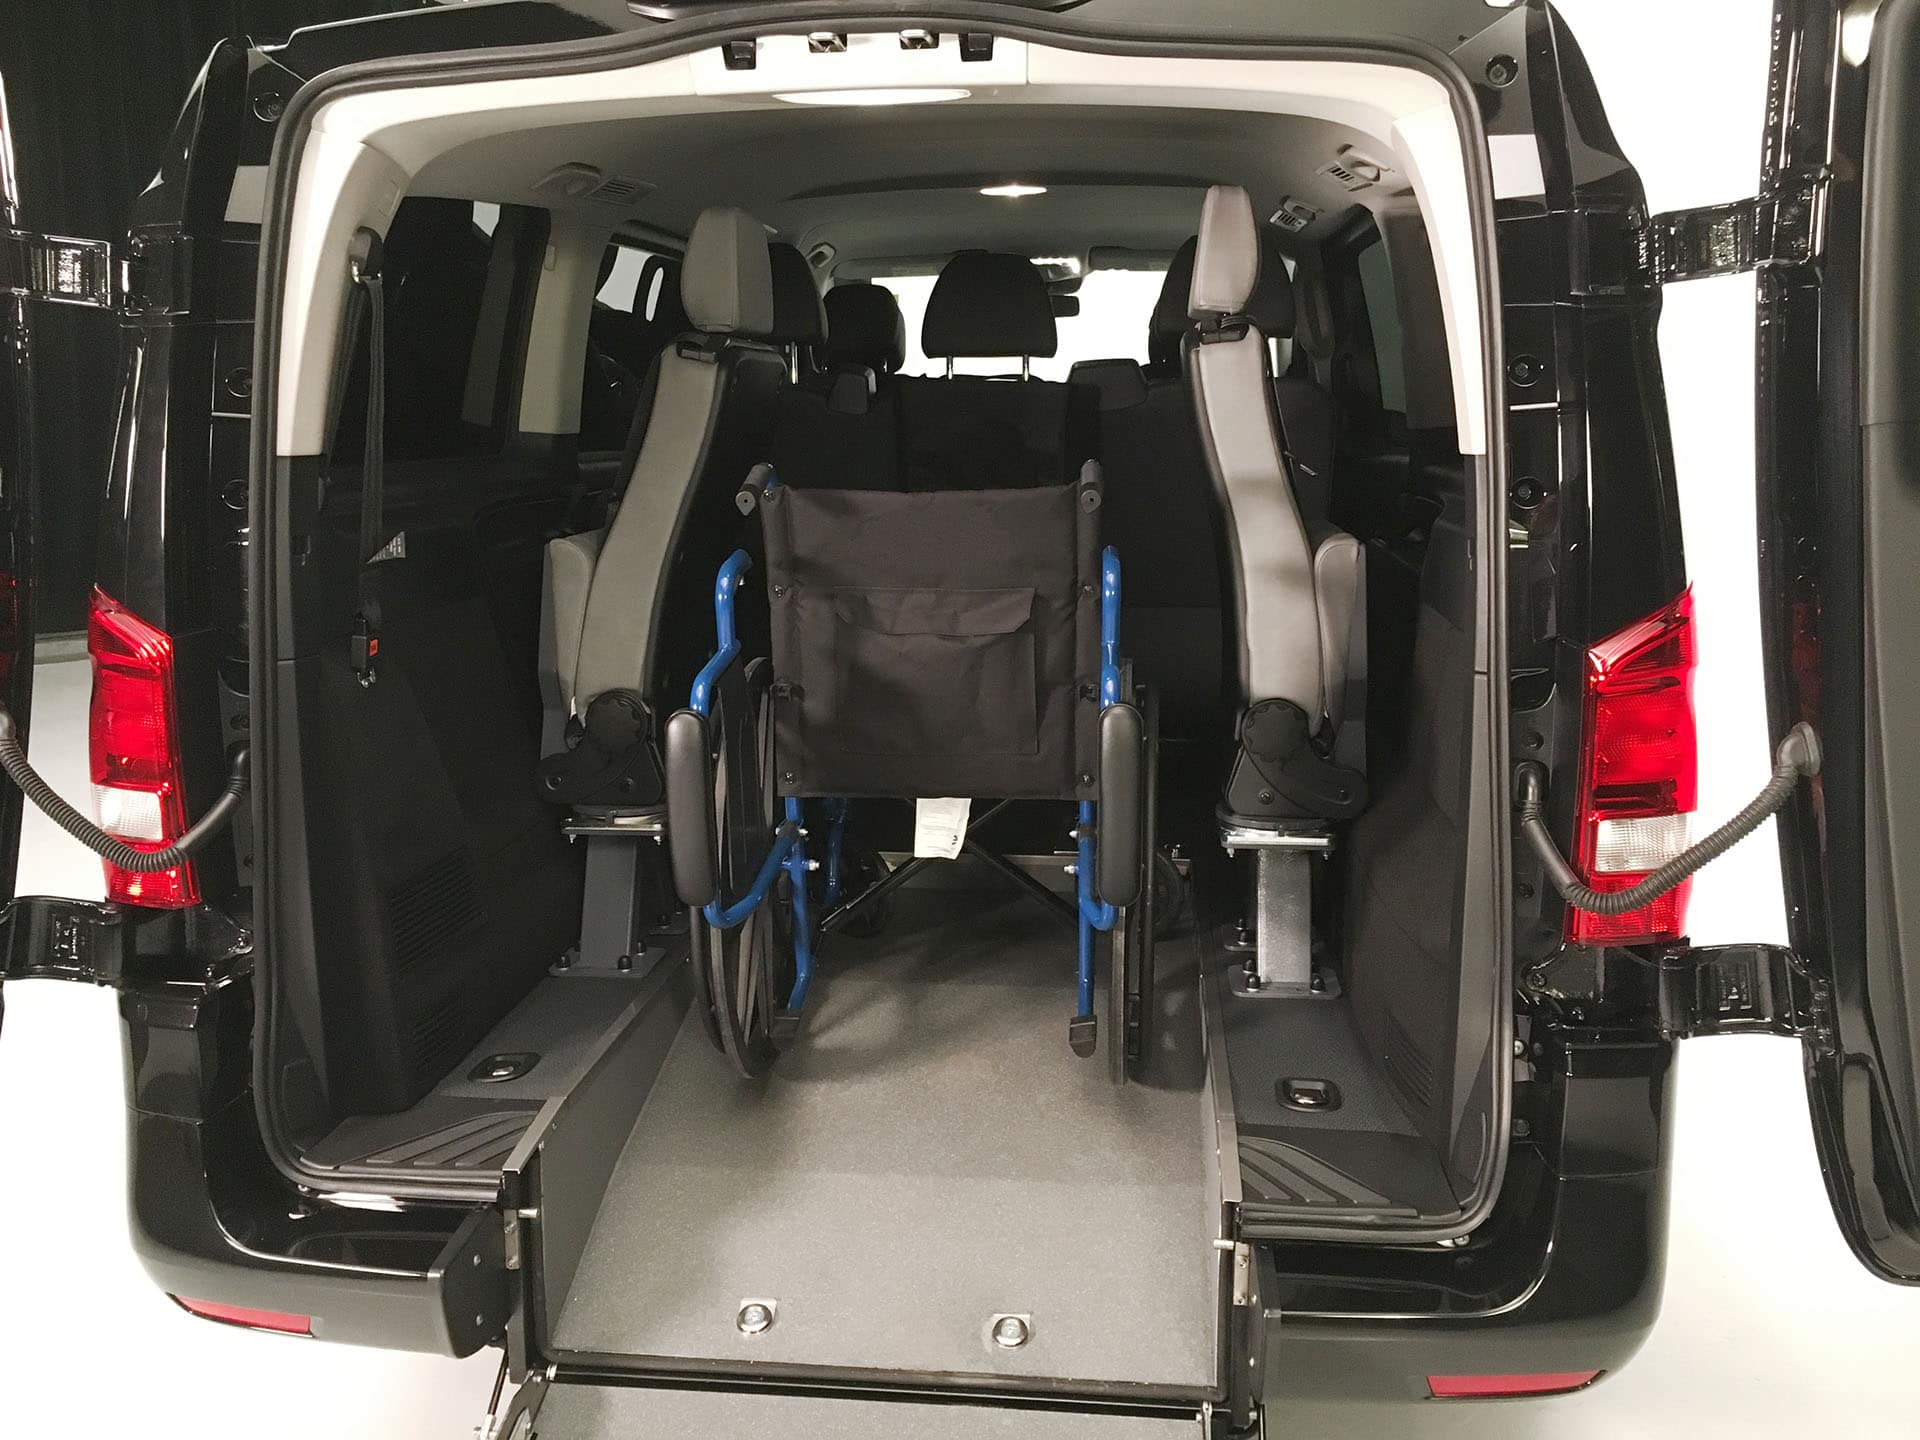 Wheelchair inside.